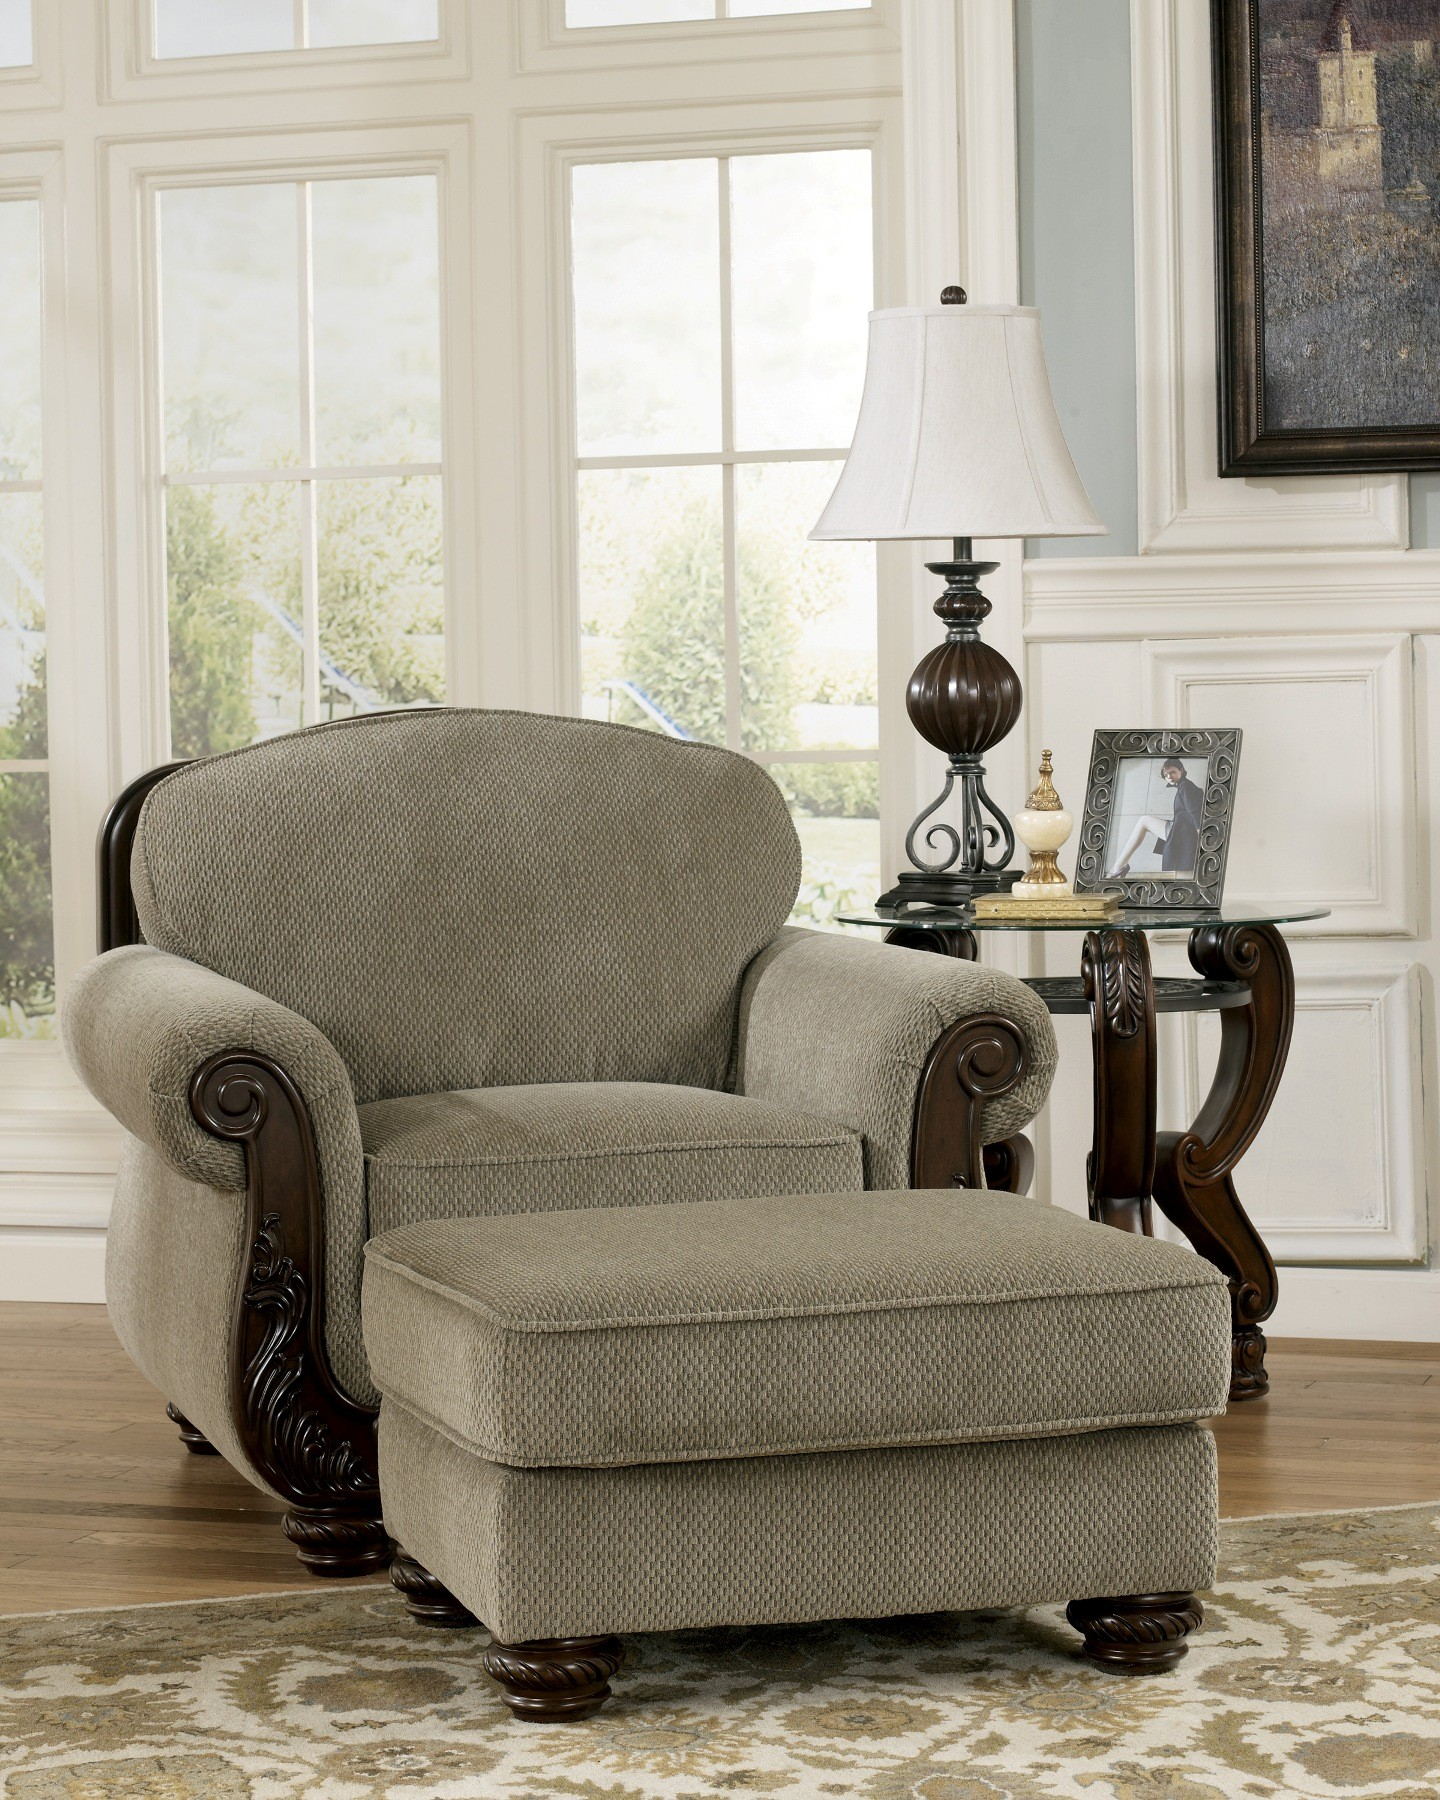 Homestore Gallery: Martinsburg Meadow Living Room Set From Ashley (57300